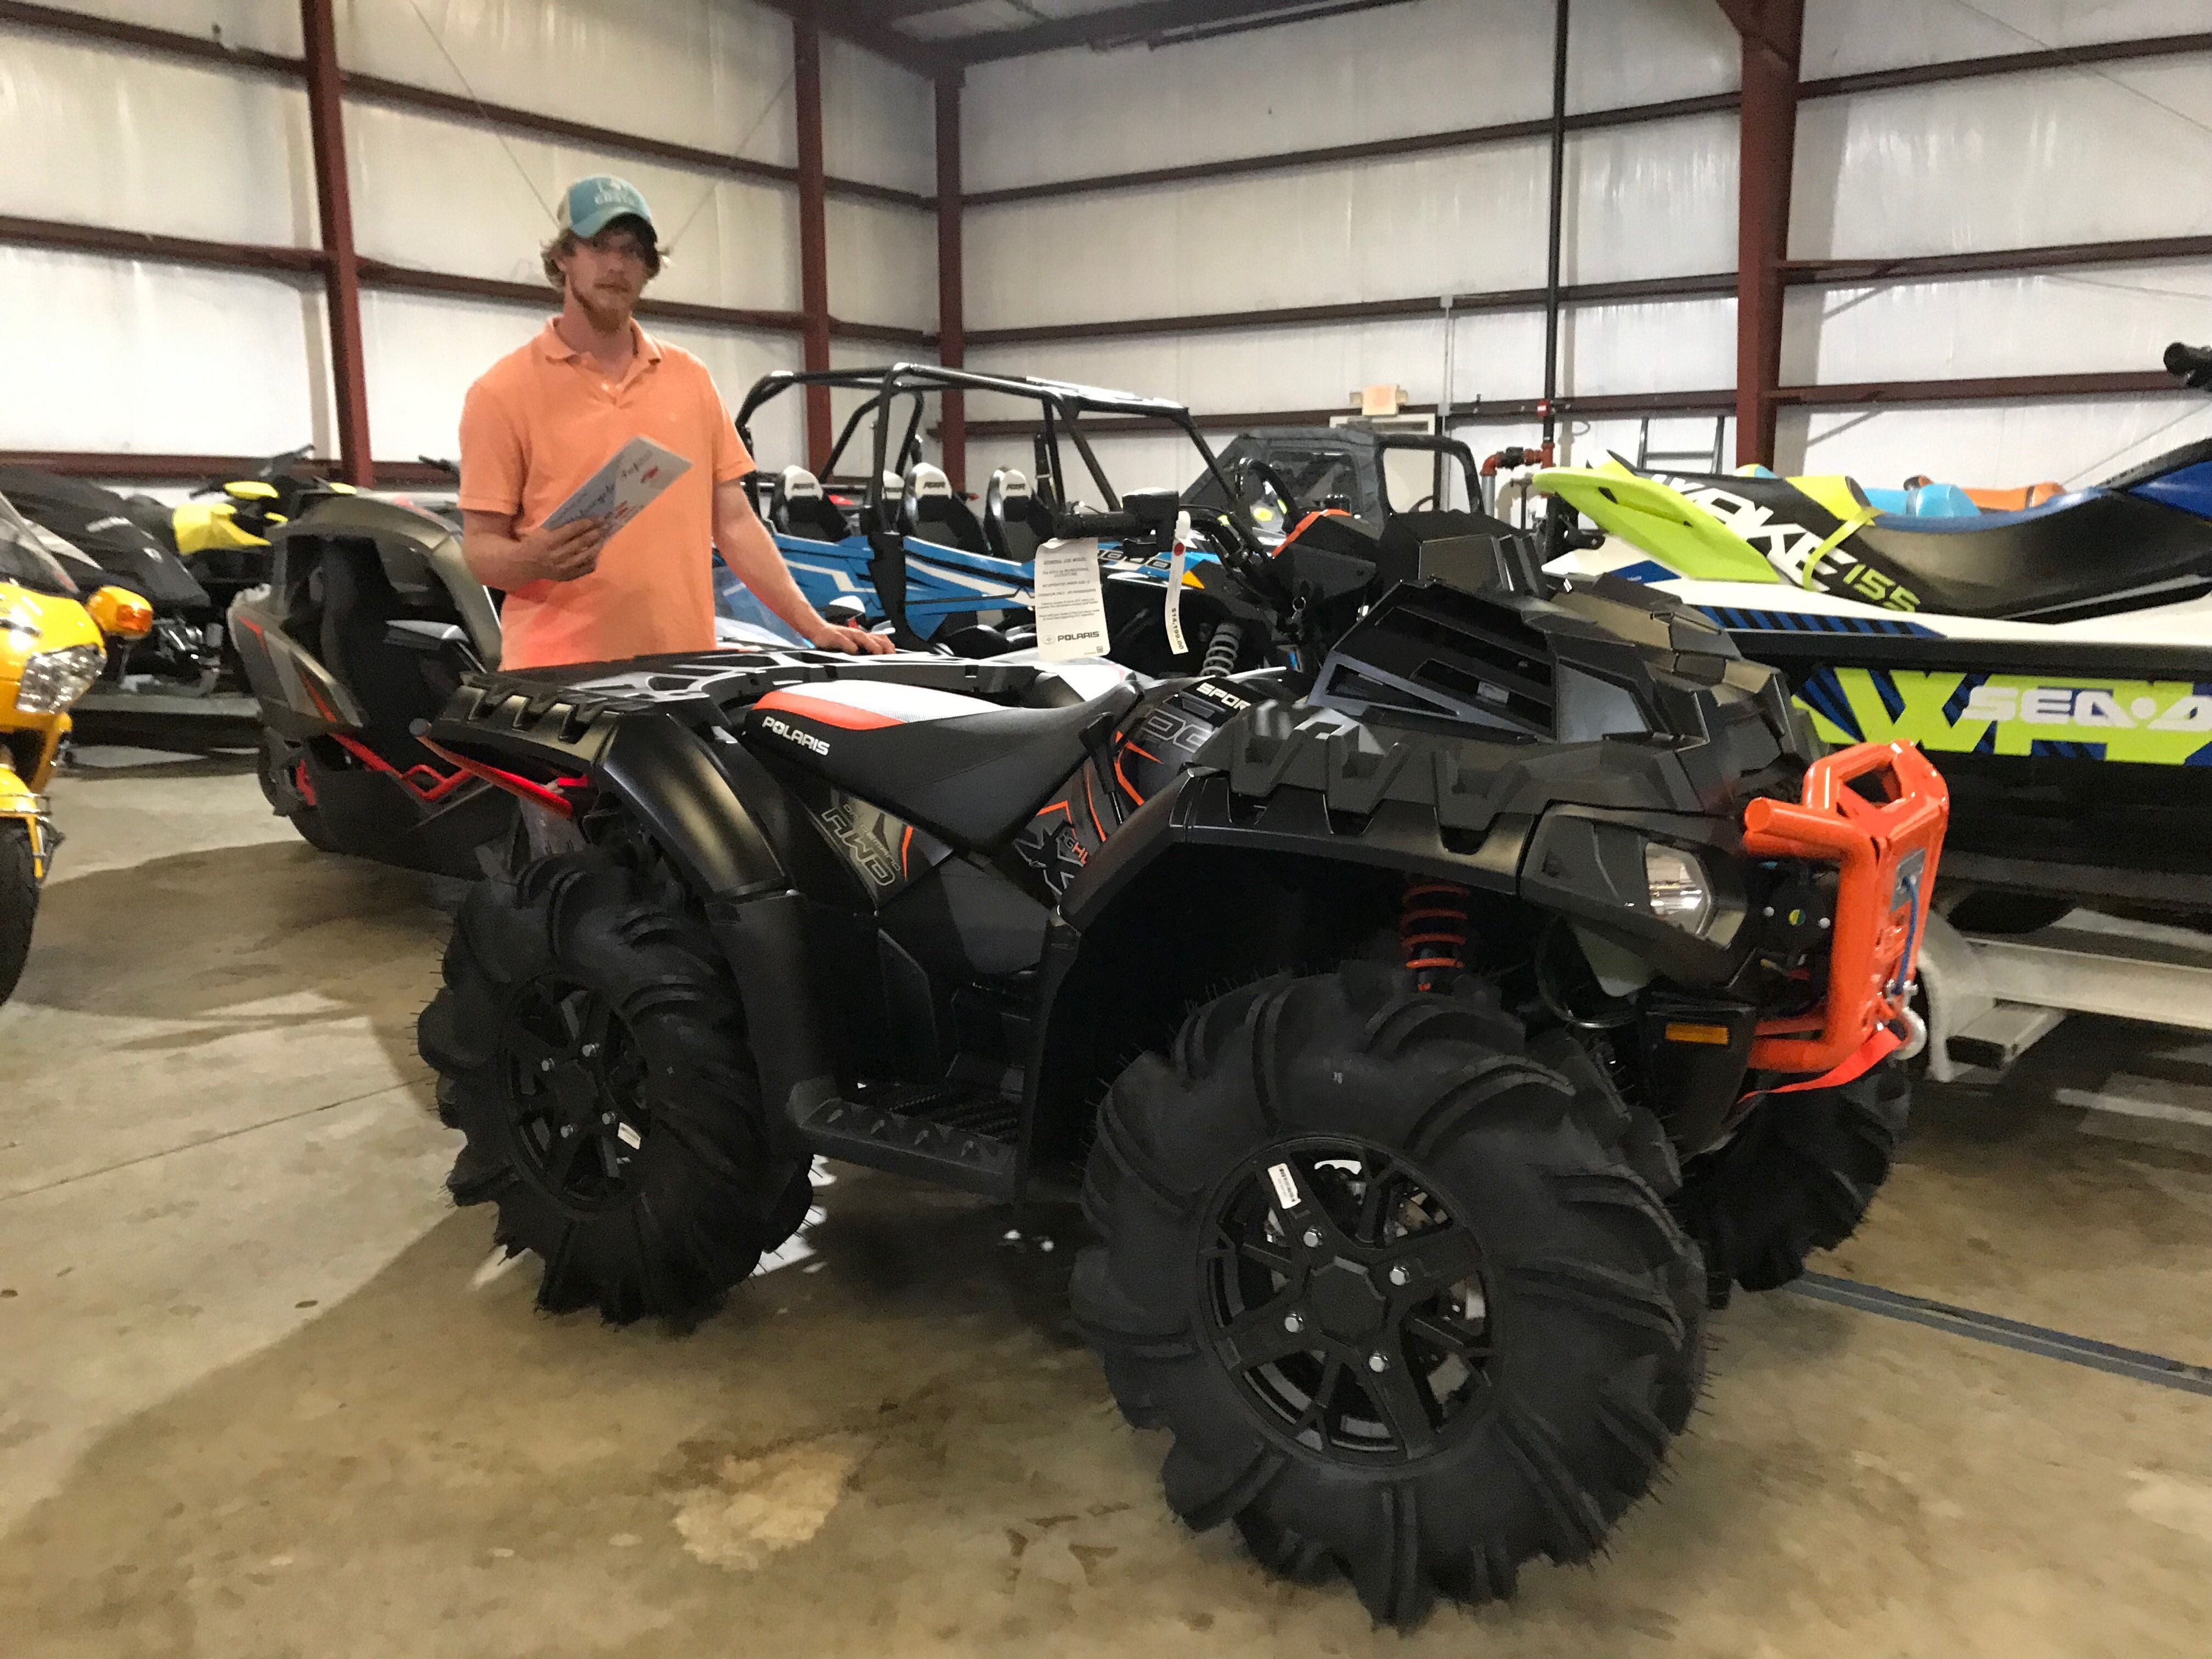 official photos fe0cb 031e5 Congratulations to Dustin Spruiell from Brandon, MS for purchasing a 2019  Polaris Sportsman XP 1000 High Lifter Edition at Hattiesburg Cycles.   polaris